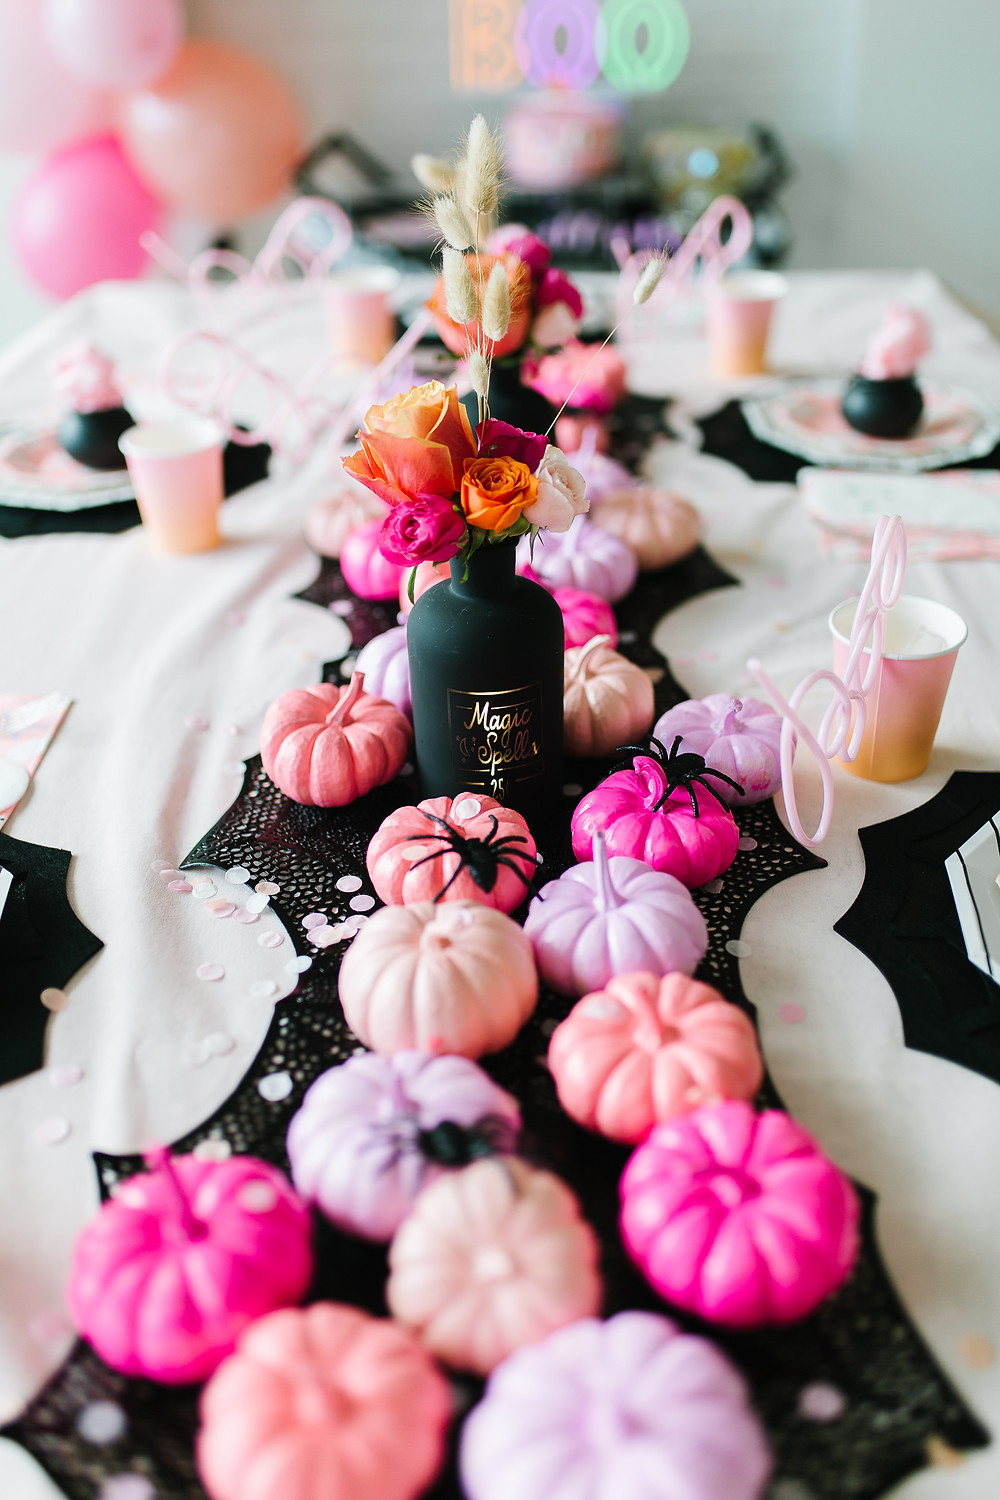 Ghoul gang halloween party with a tablescape of Halloween decor including pink and orange painted pumpkins and flowers.